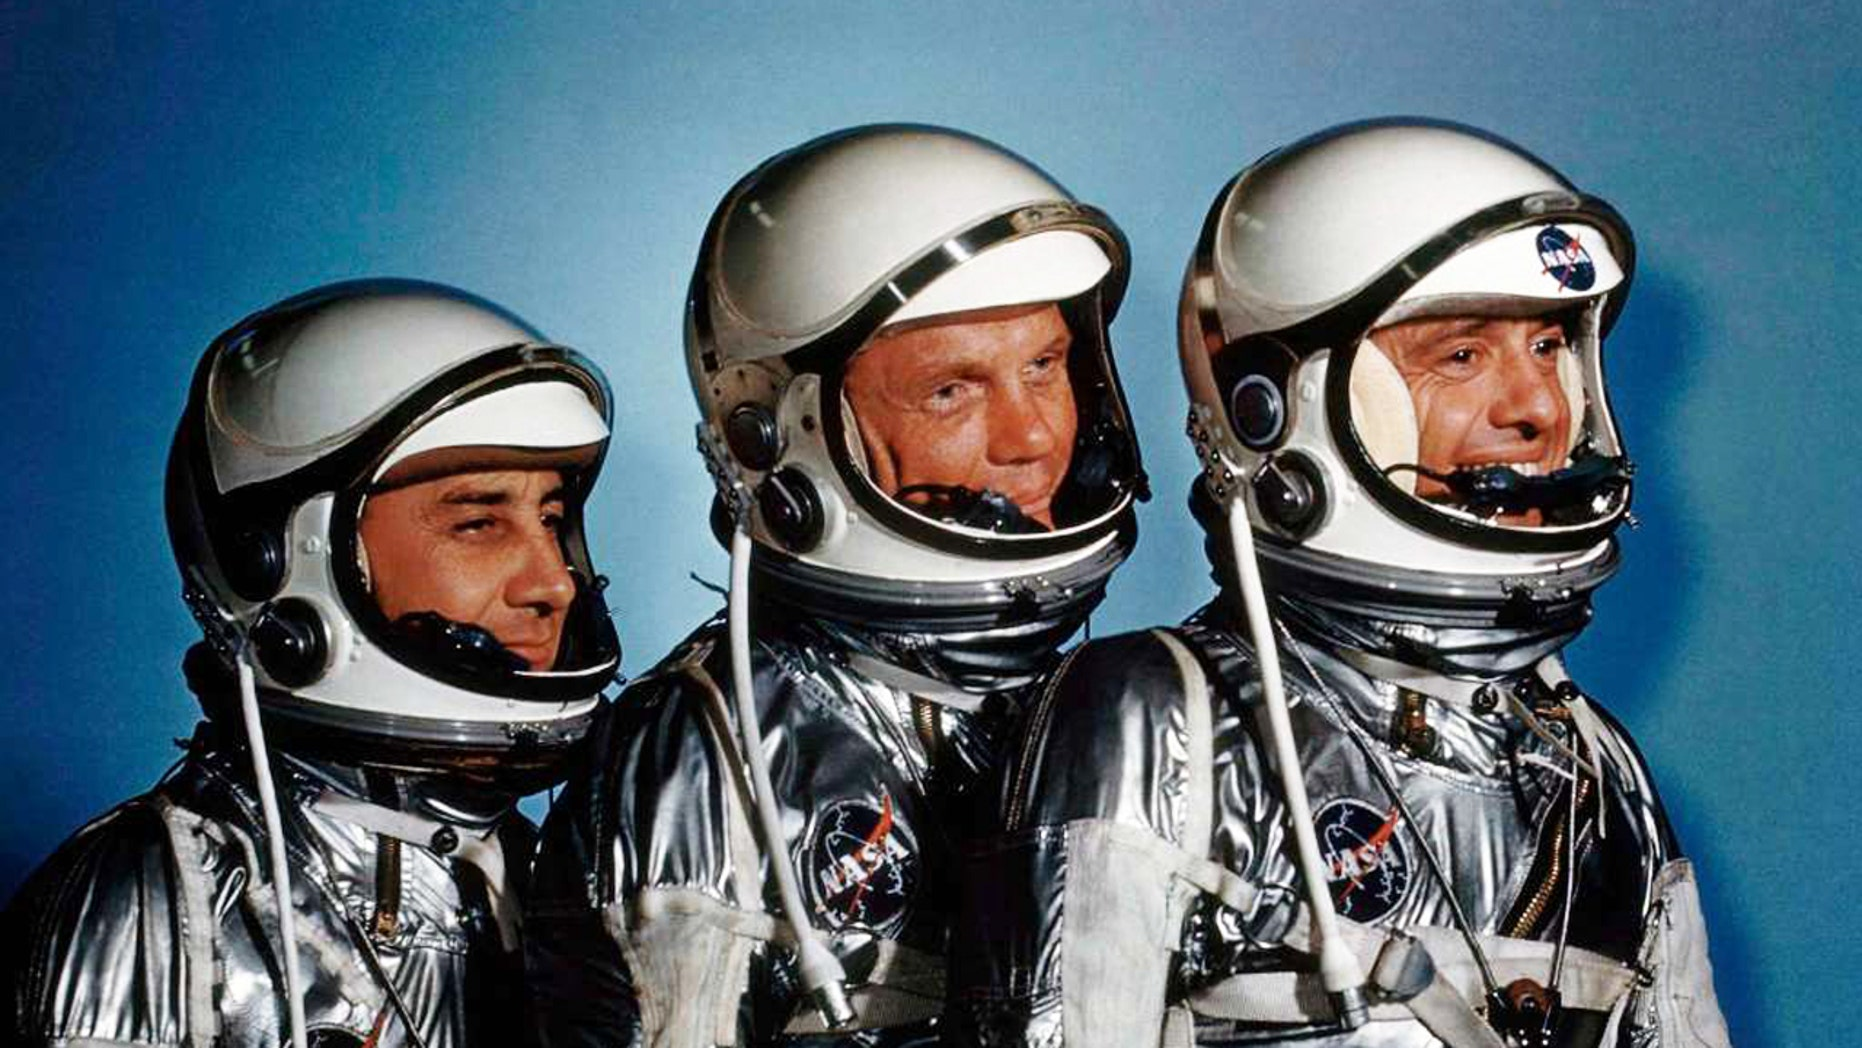 """This May 1961 file photo shows astronauts, from left, Virgil I. Grissom, John Glenn and Alan Shepard. A new exhibit, """"Heroes and Legends"""" is now at the Kennedy Space Center in Florida."""